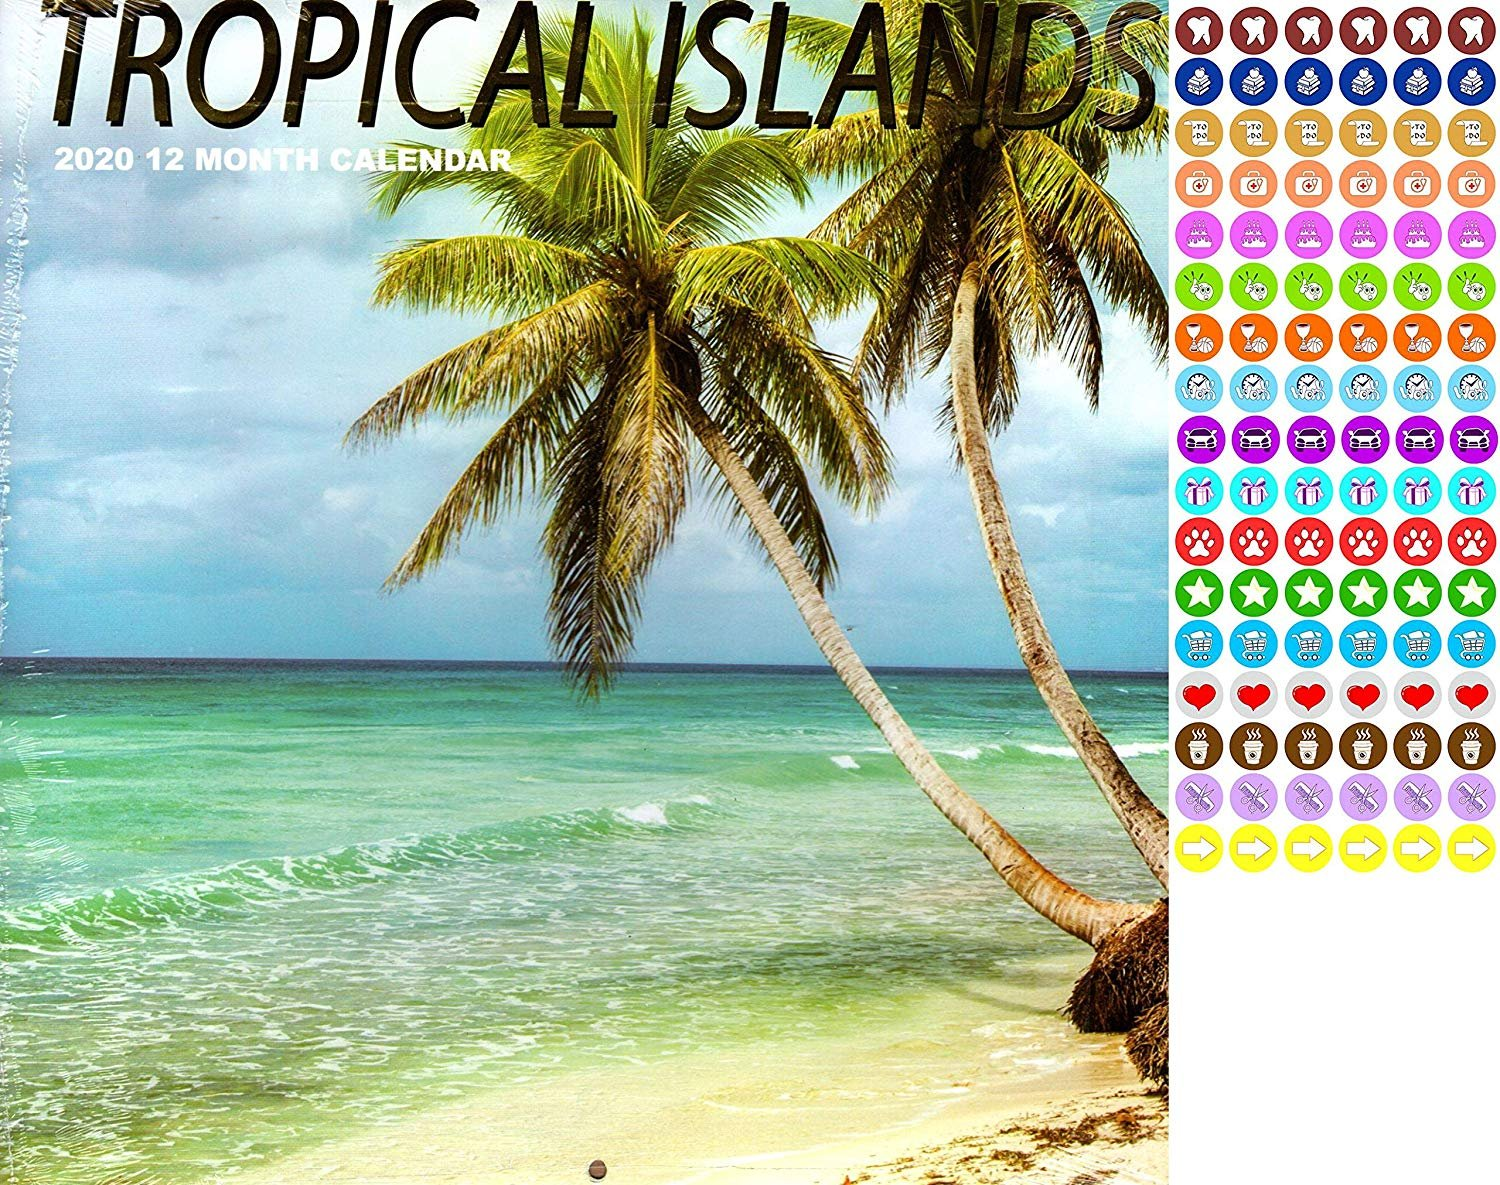 Tropical Islands - 12 Month 2020 Wall Calendar - with 100 Reminder Stickers